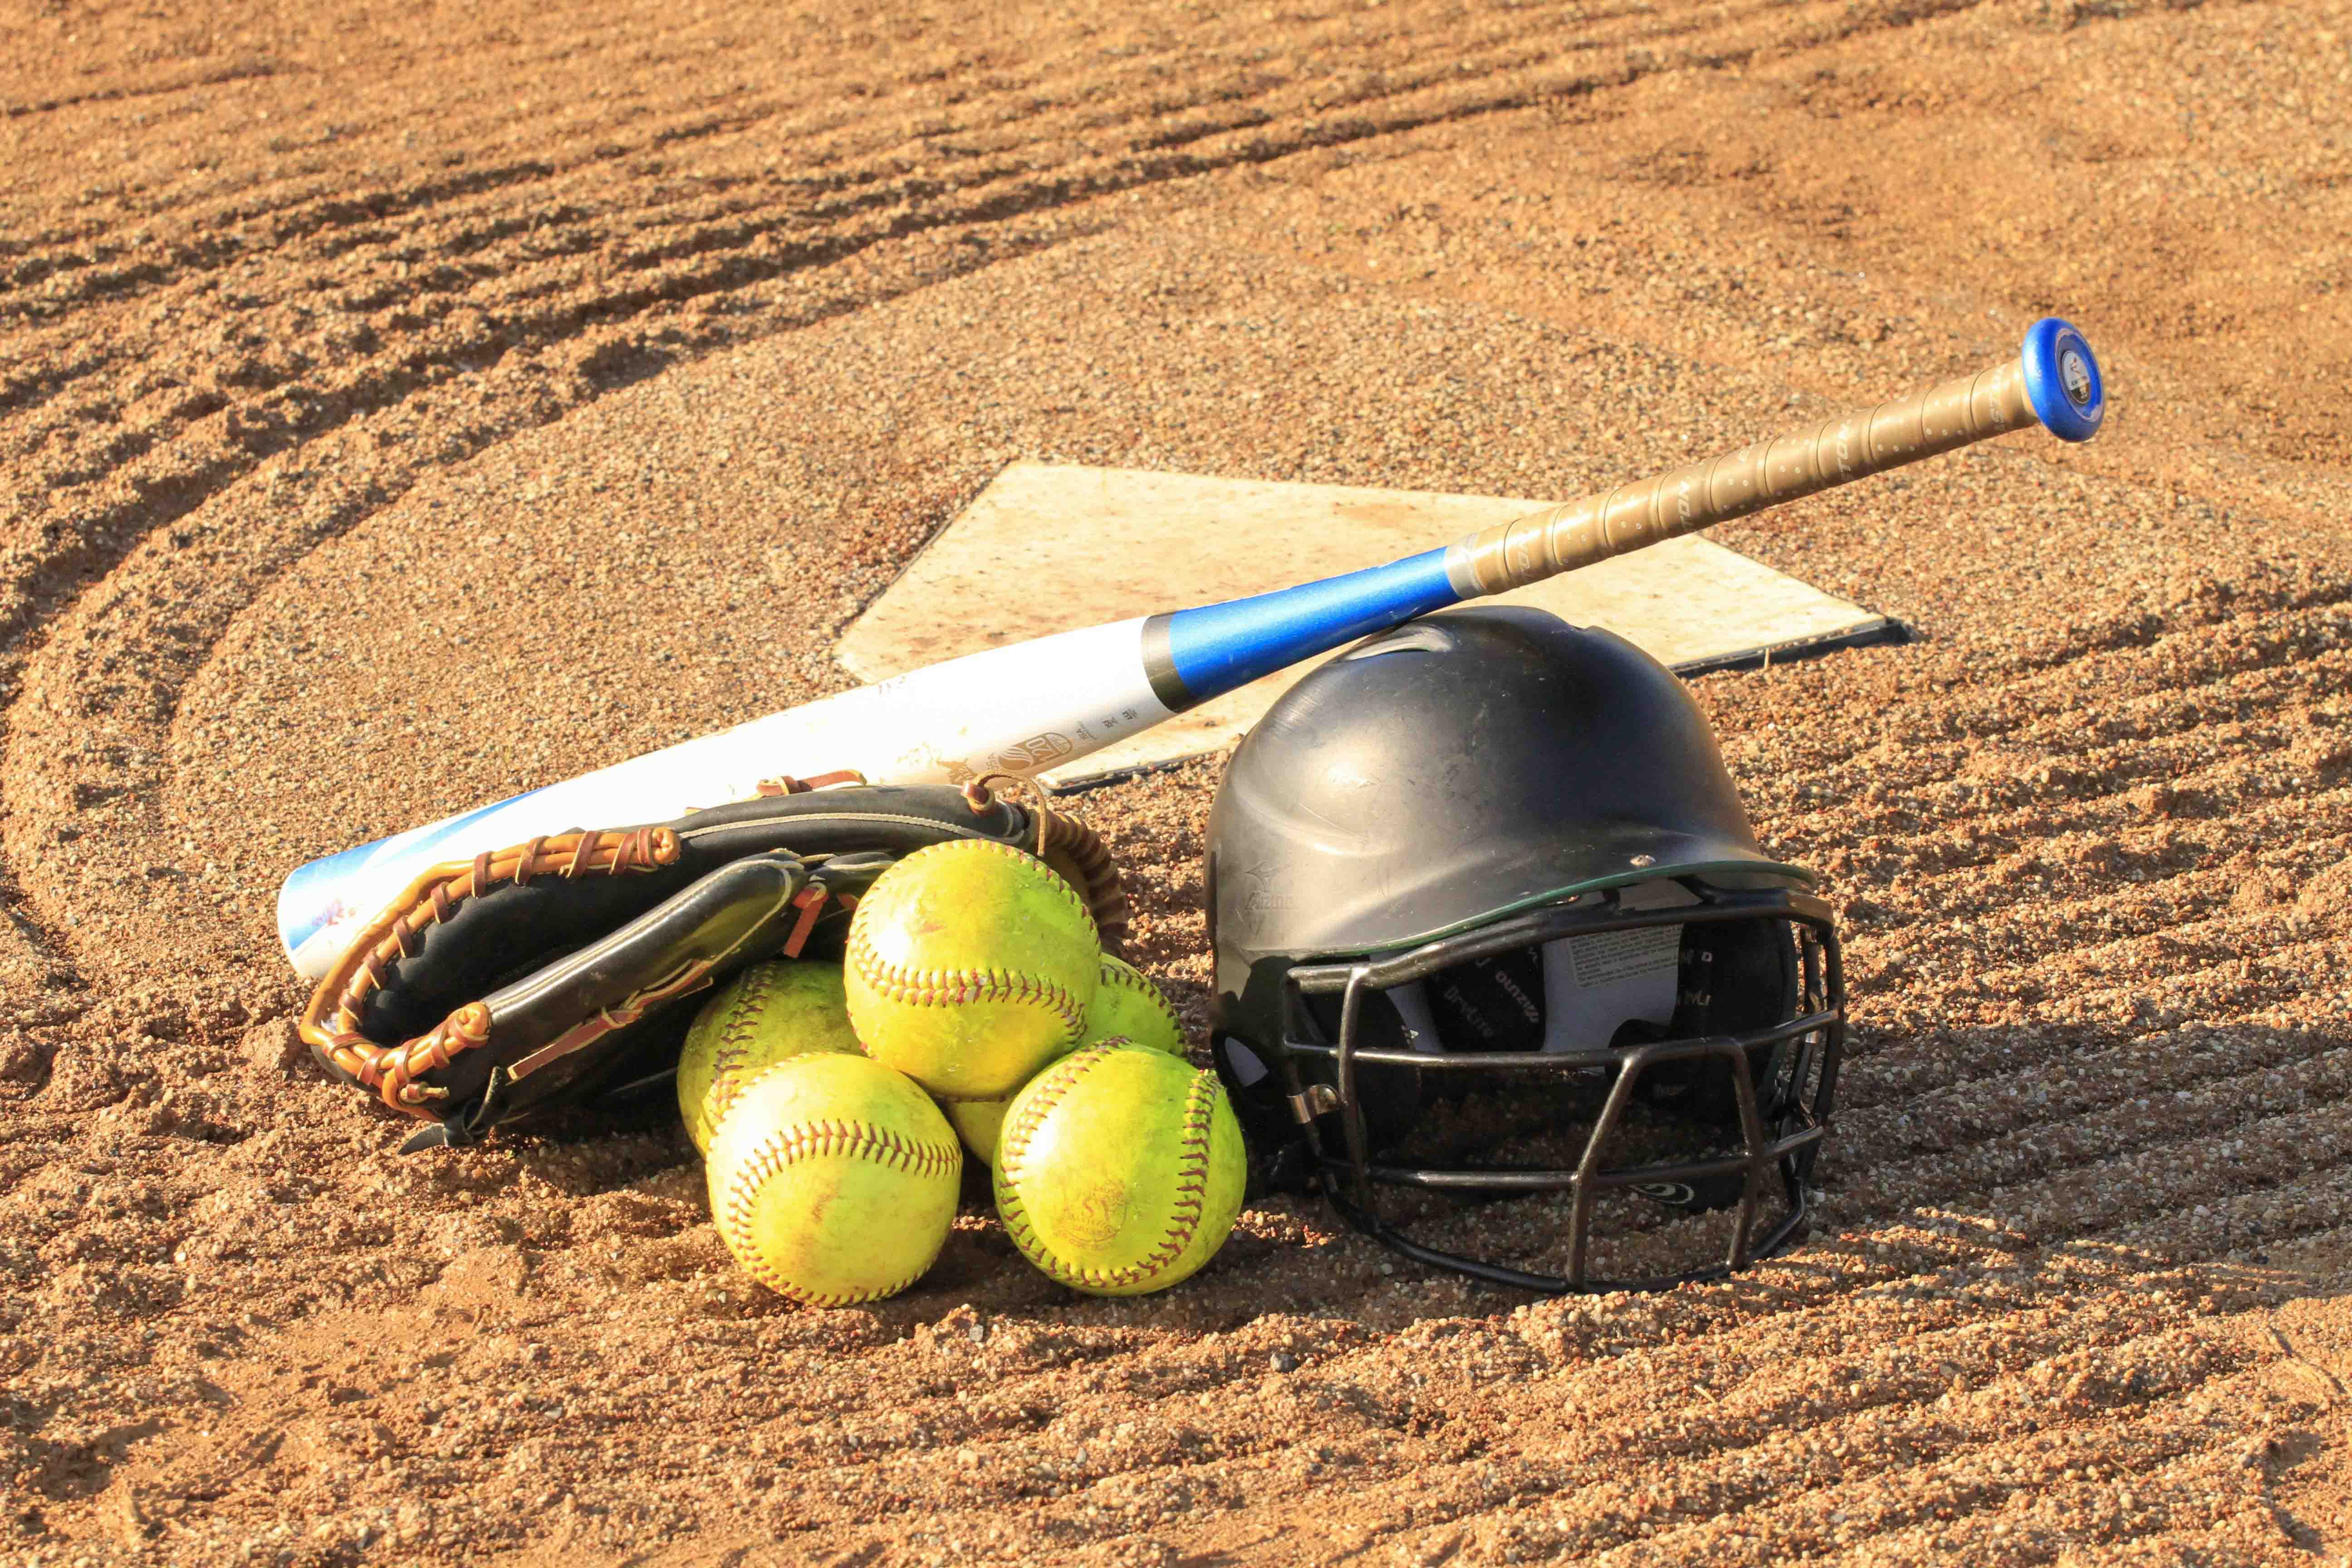 Softballs, a bat, and a helmet laying on the field